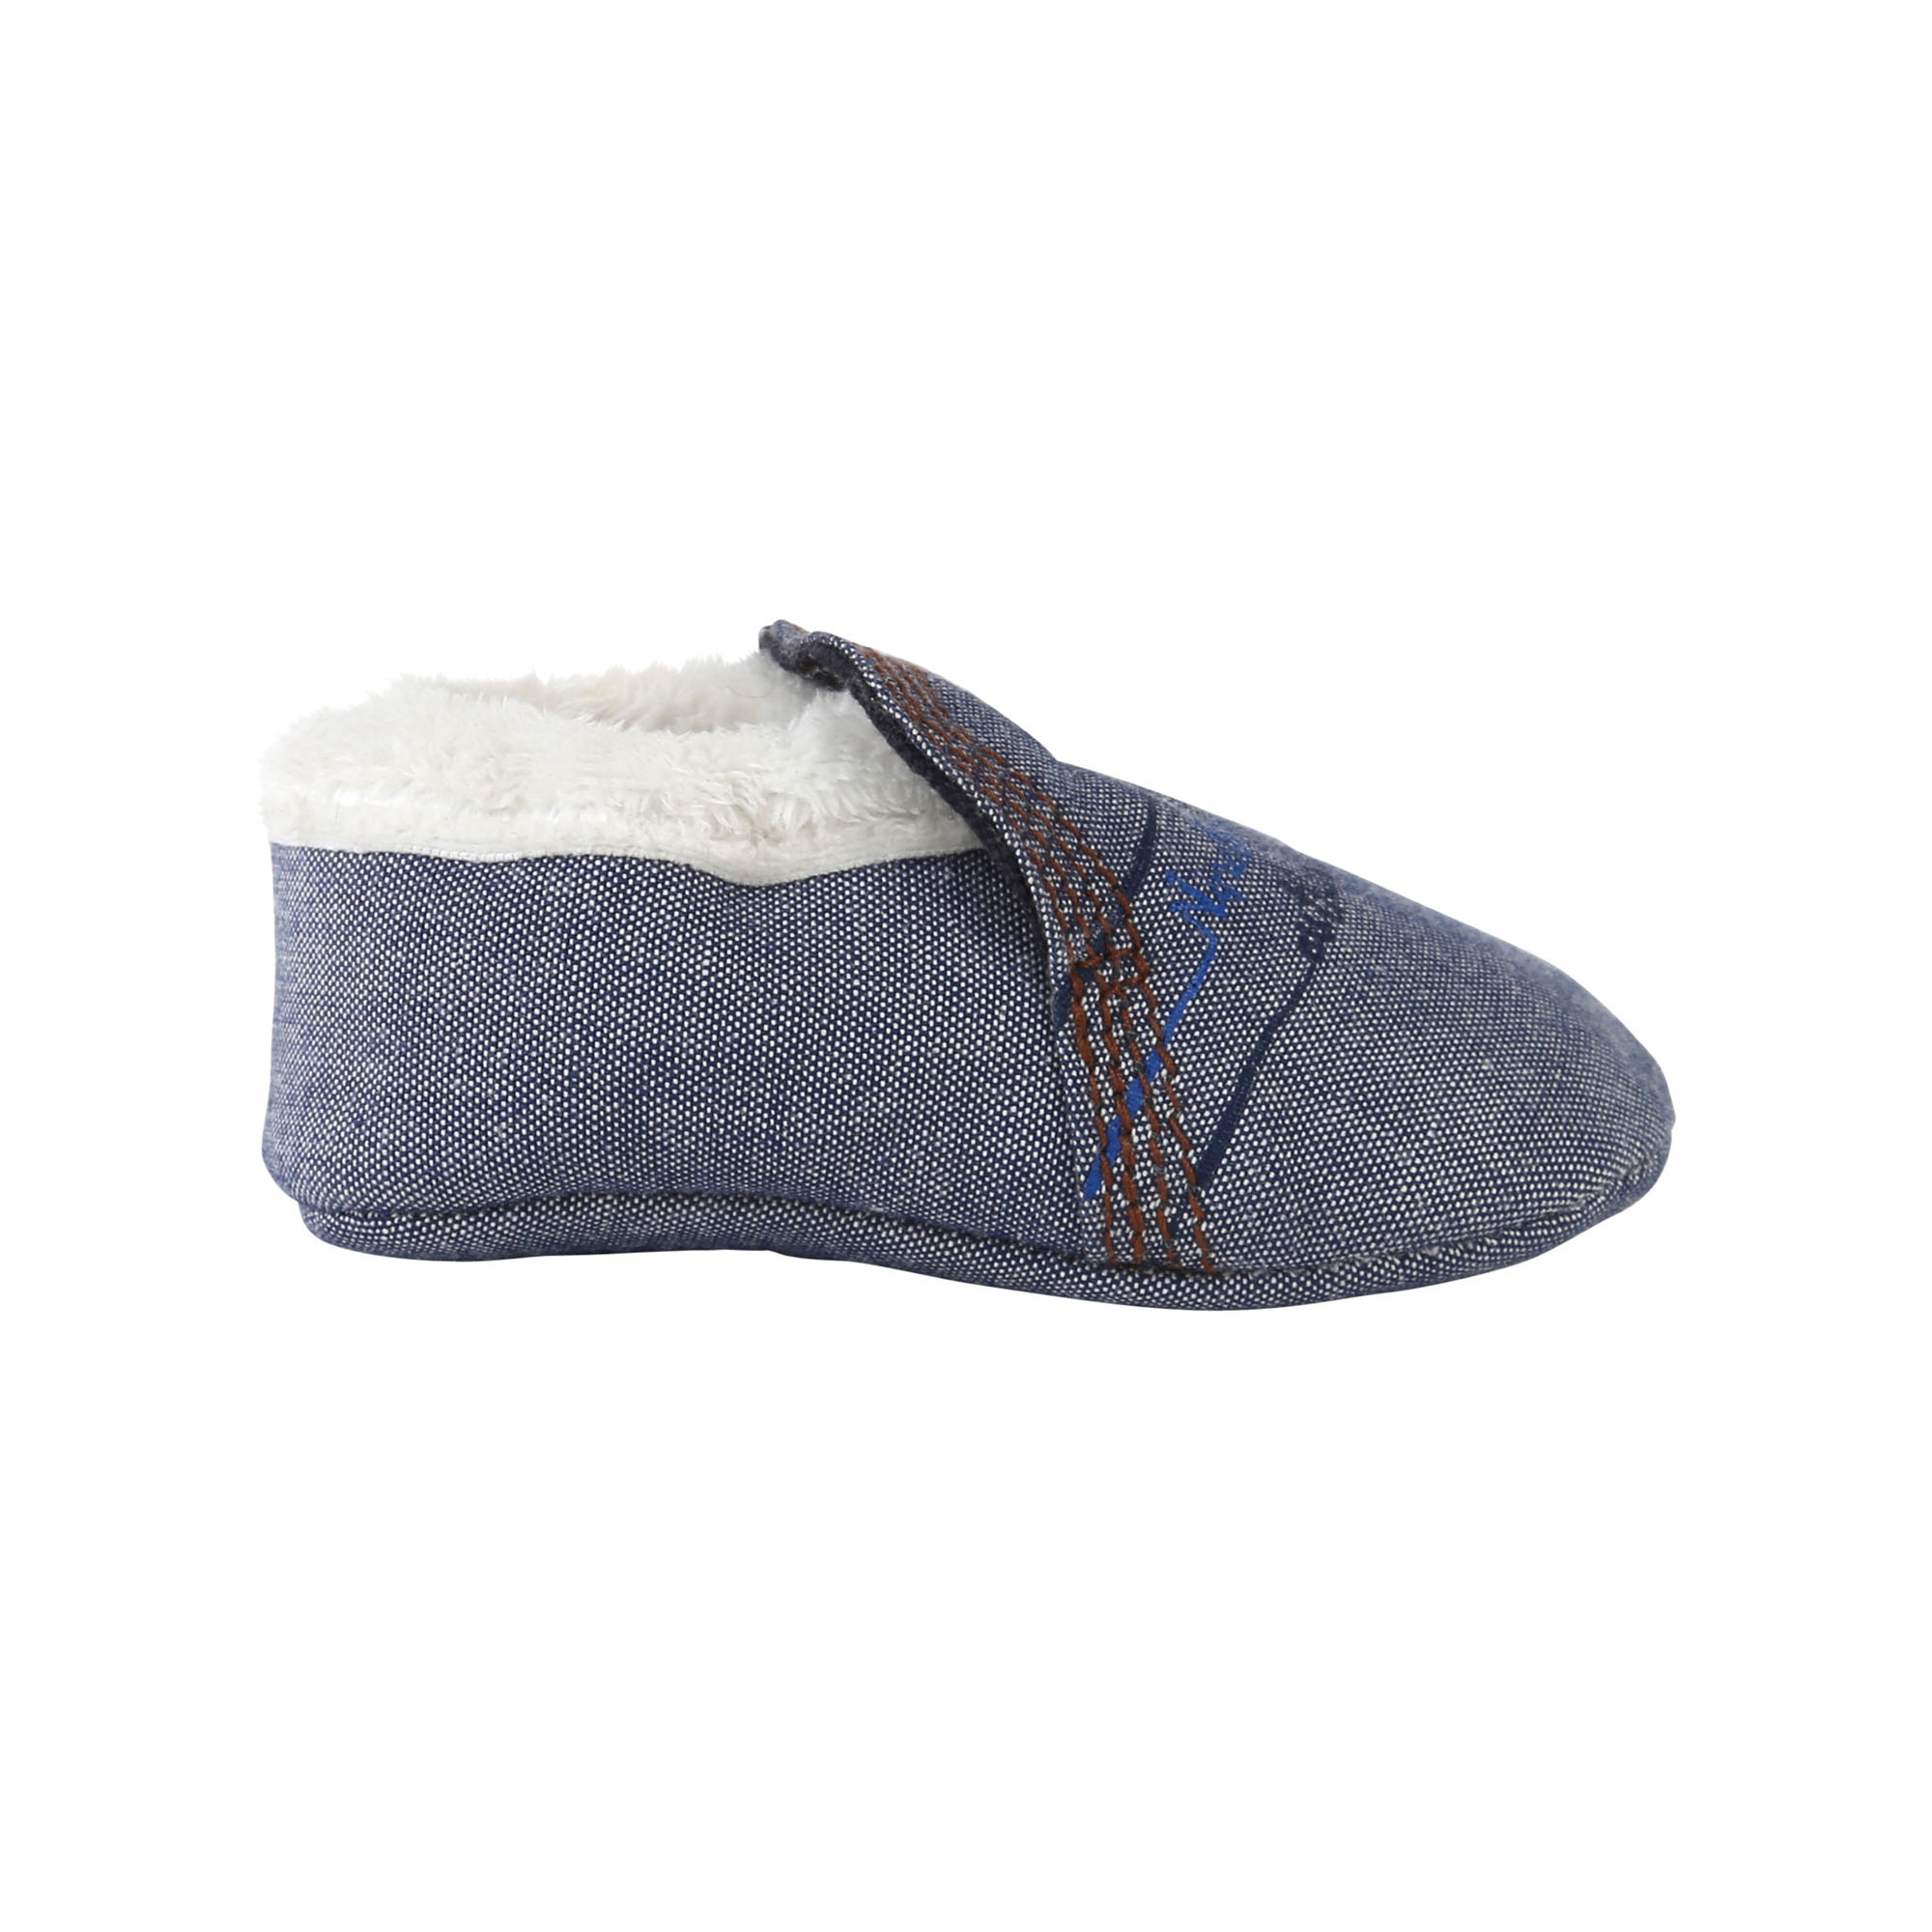 Chaussons chambray / fourrure TIMBERLAND pour GARCON